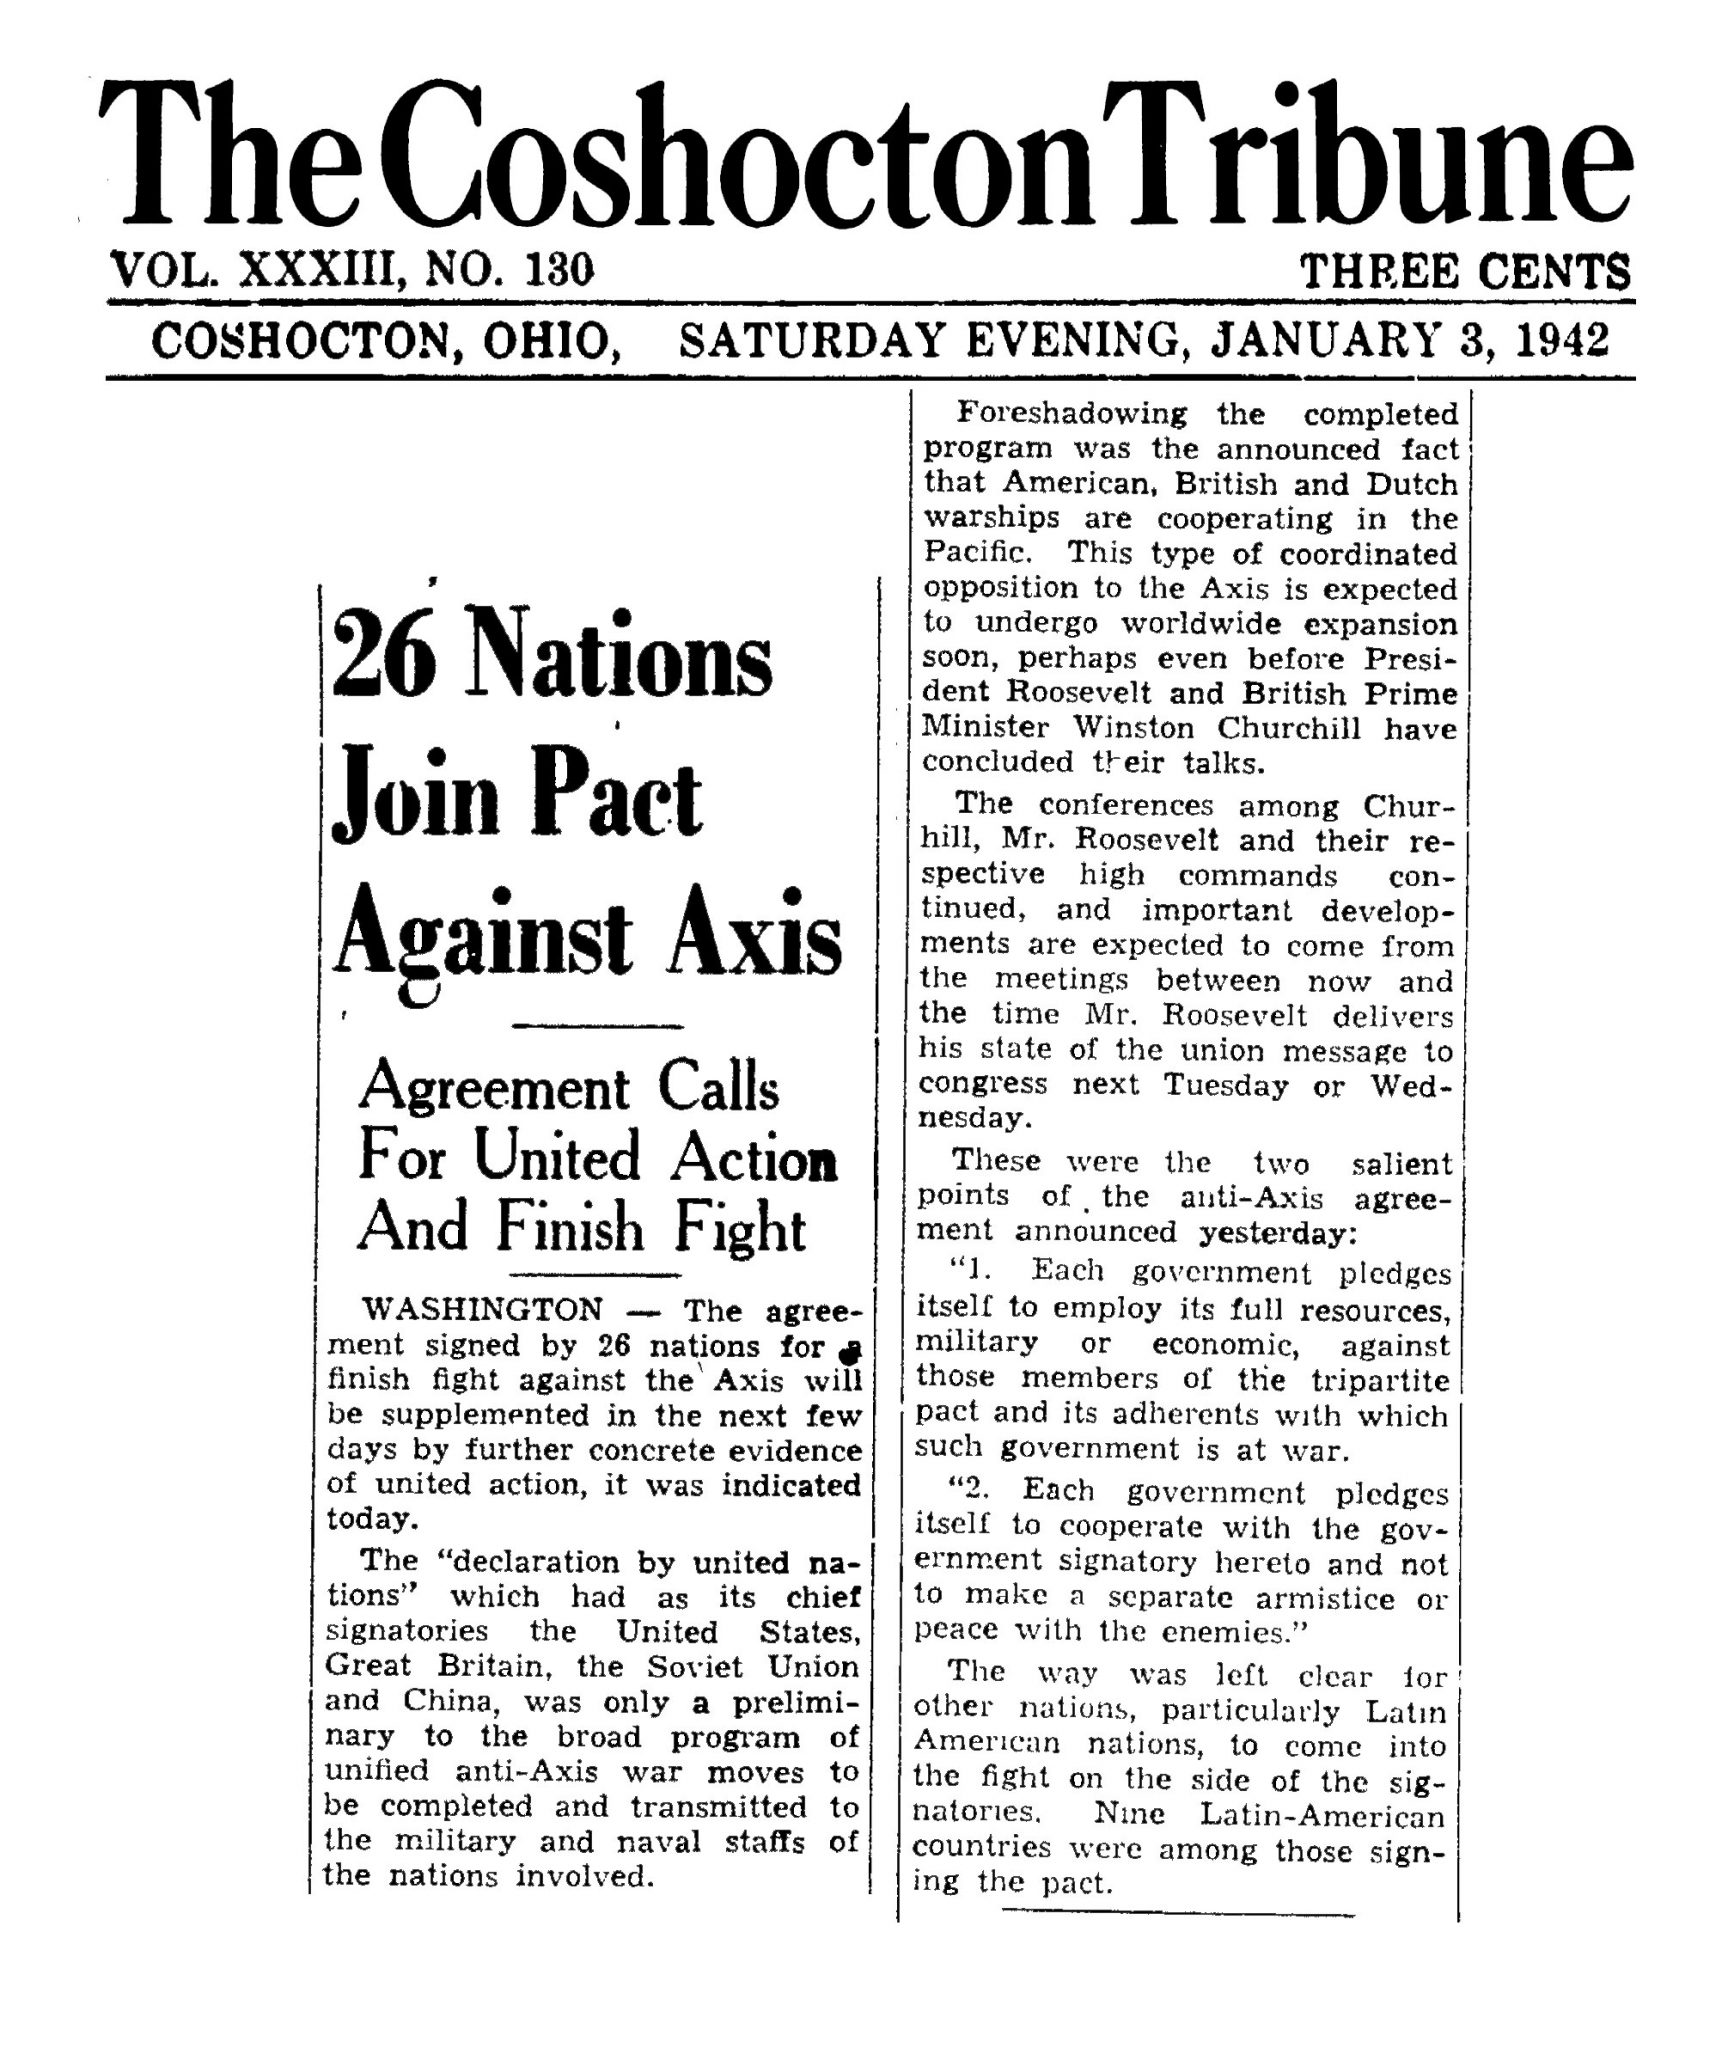 1st January 1942: Declaration by the United Nations agreed